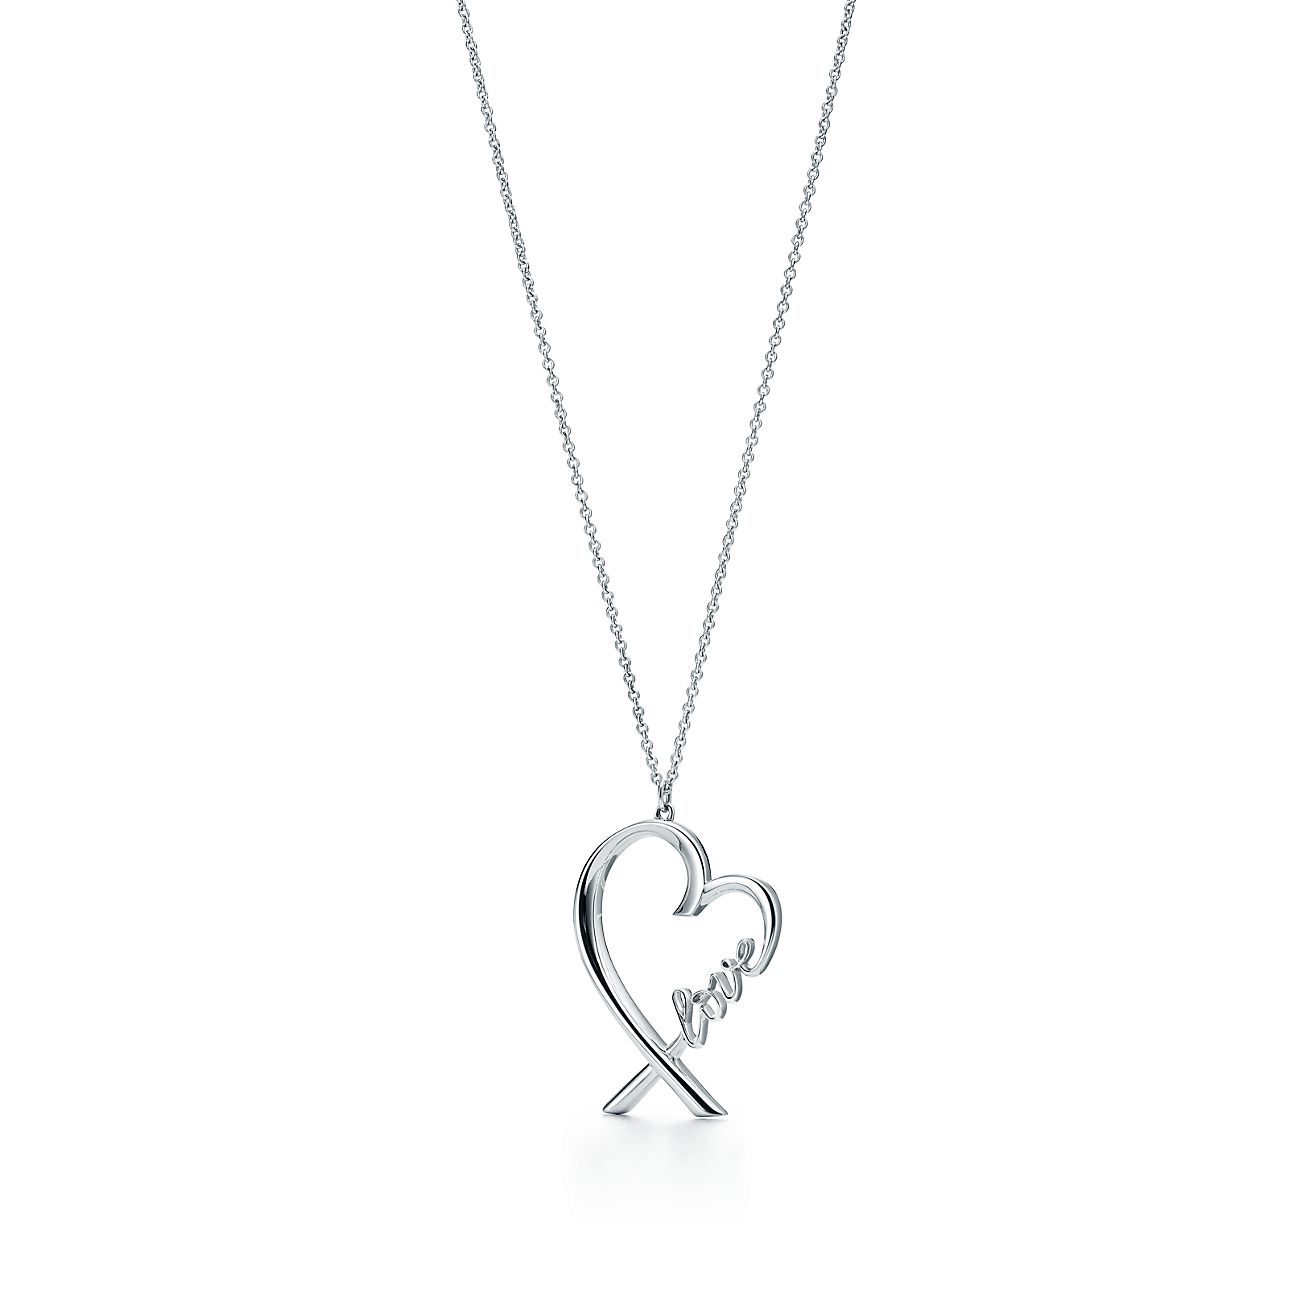 Paloma picasso loving heart love pendant in sterling silver paloma picassoloving heartbrlove pendant aloadofball Image collections